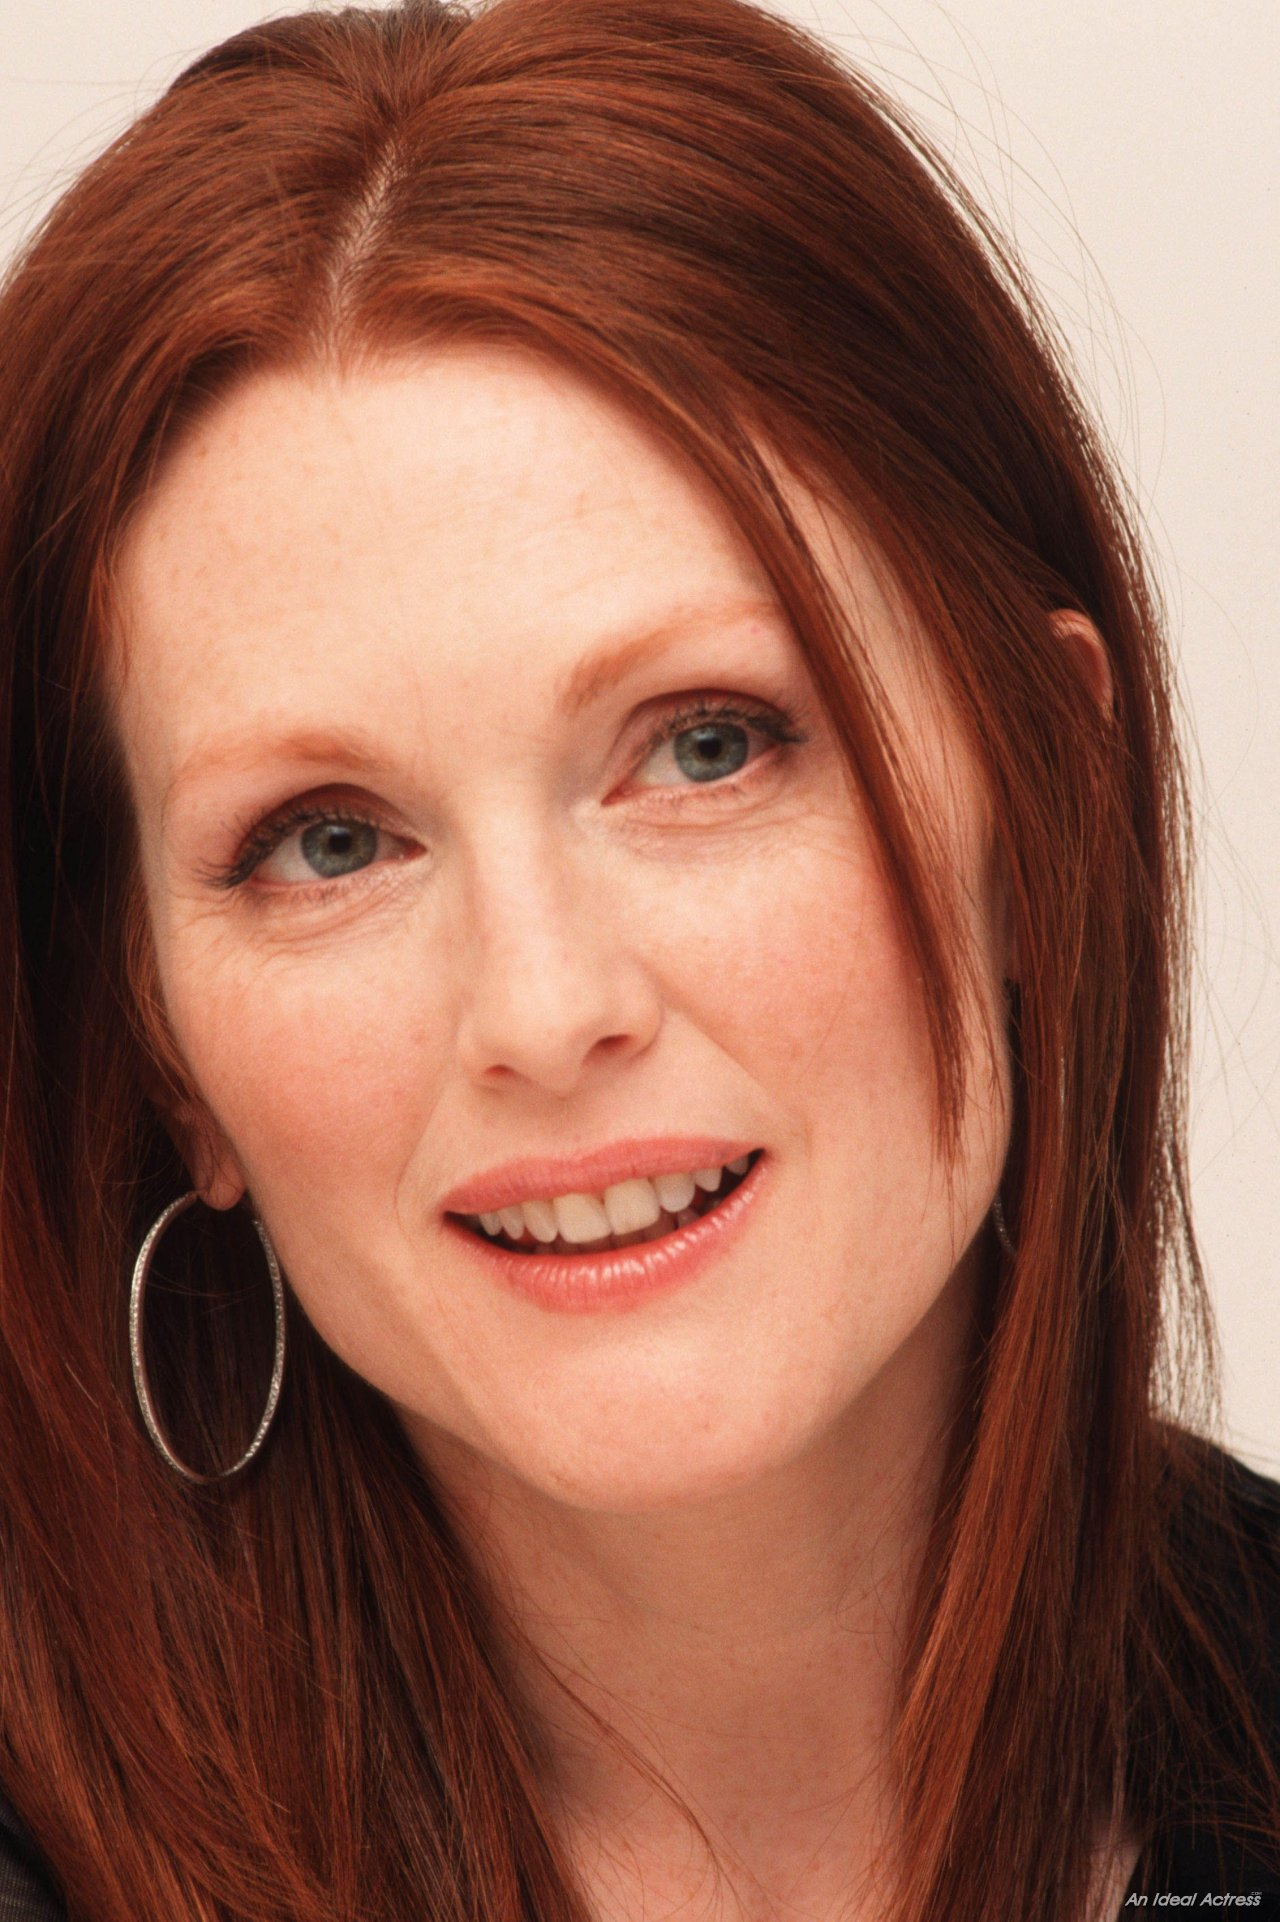 Michael Jackson Hd Wallpapers For Iphone 6 Julianne Moore Wallpapers High Quality Download Free